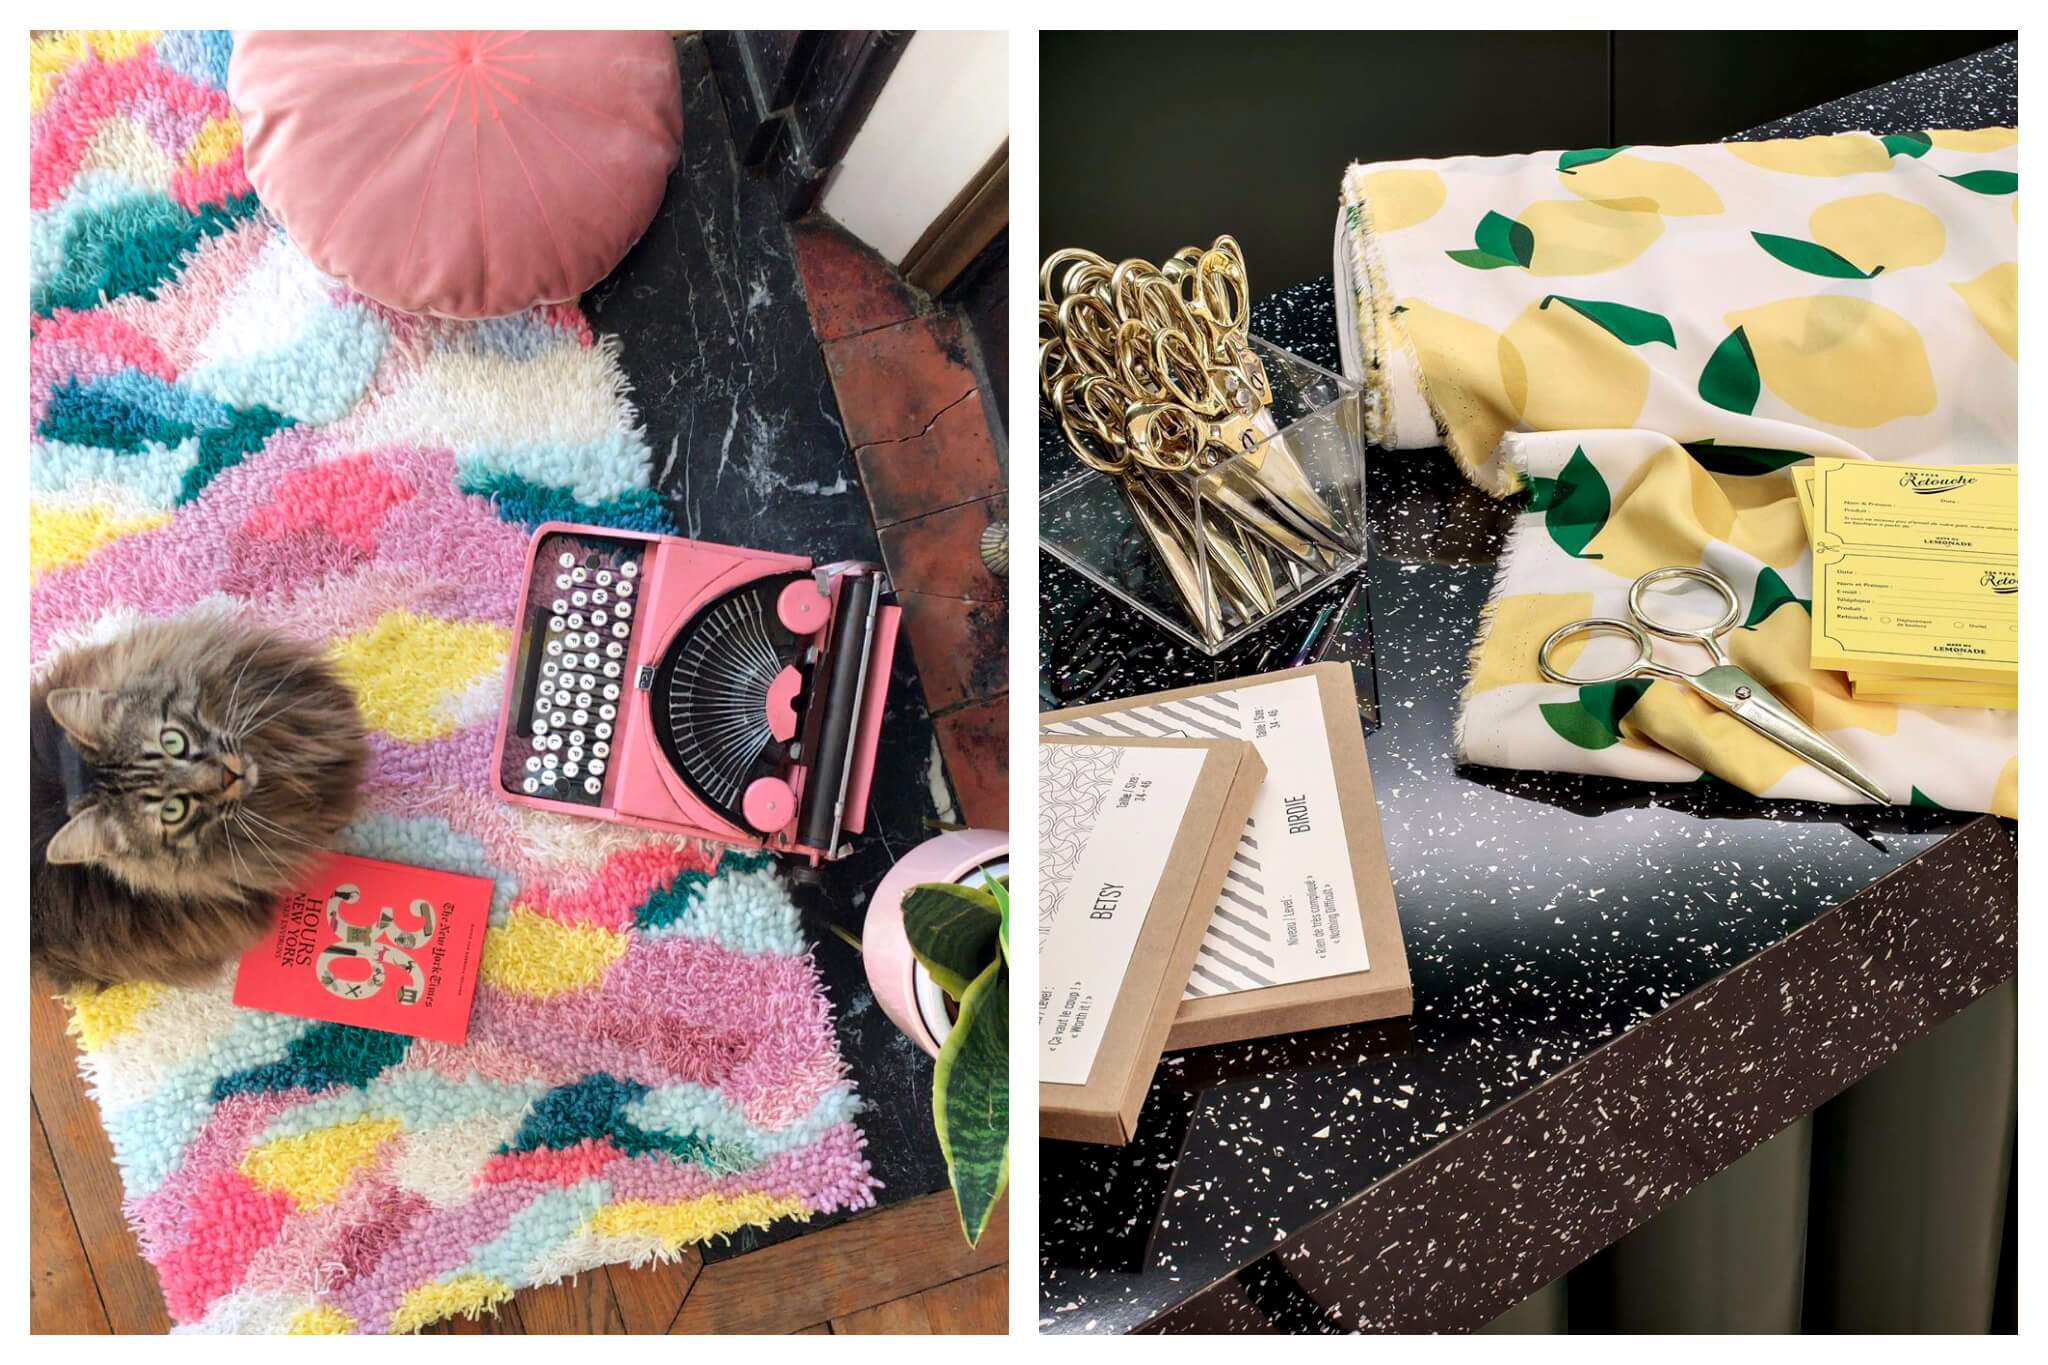 Left: a multi-colored crochet rug on the floor. There is a pink circular cushion, a pink type writer, a pot plant, a book, and a grey long-haired cat looking up at the viewer. Right: a roll of fabric with yellow lemons on it on a black and white speckled table with a box of scissors, some pattern boxes, and yellow 'retouche' forms.